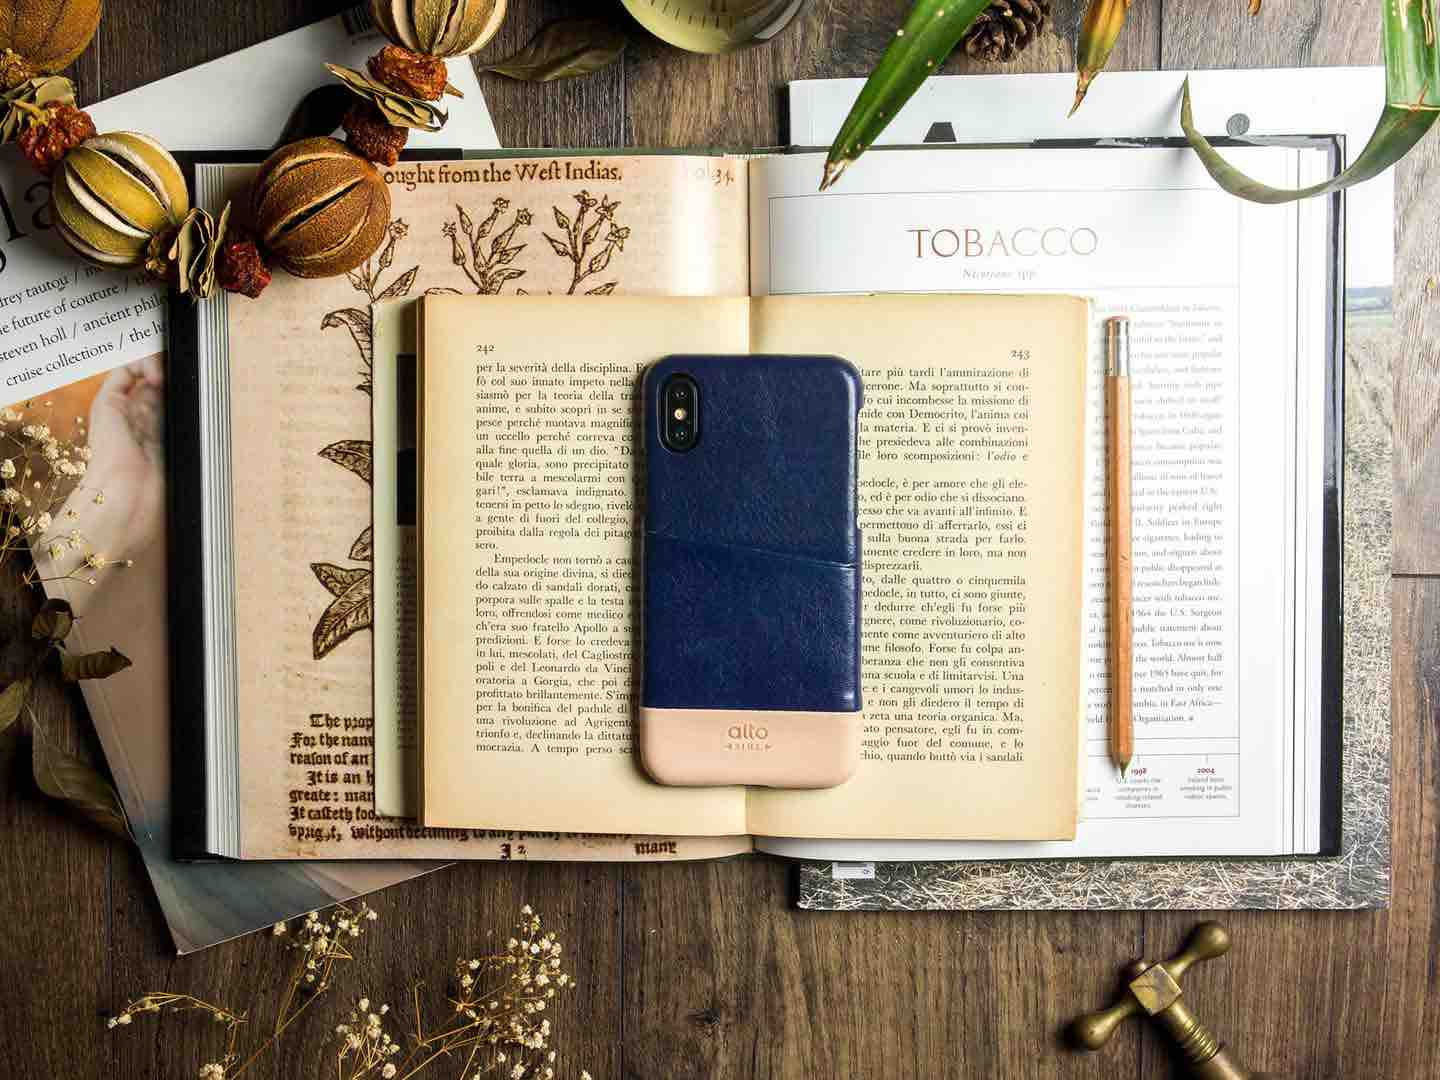 Better protection for your phone easily achieved through proper case installation and removal